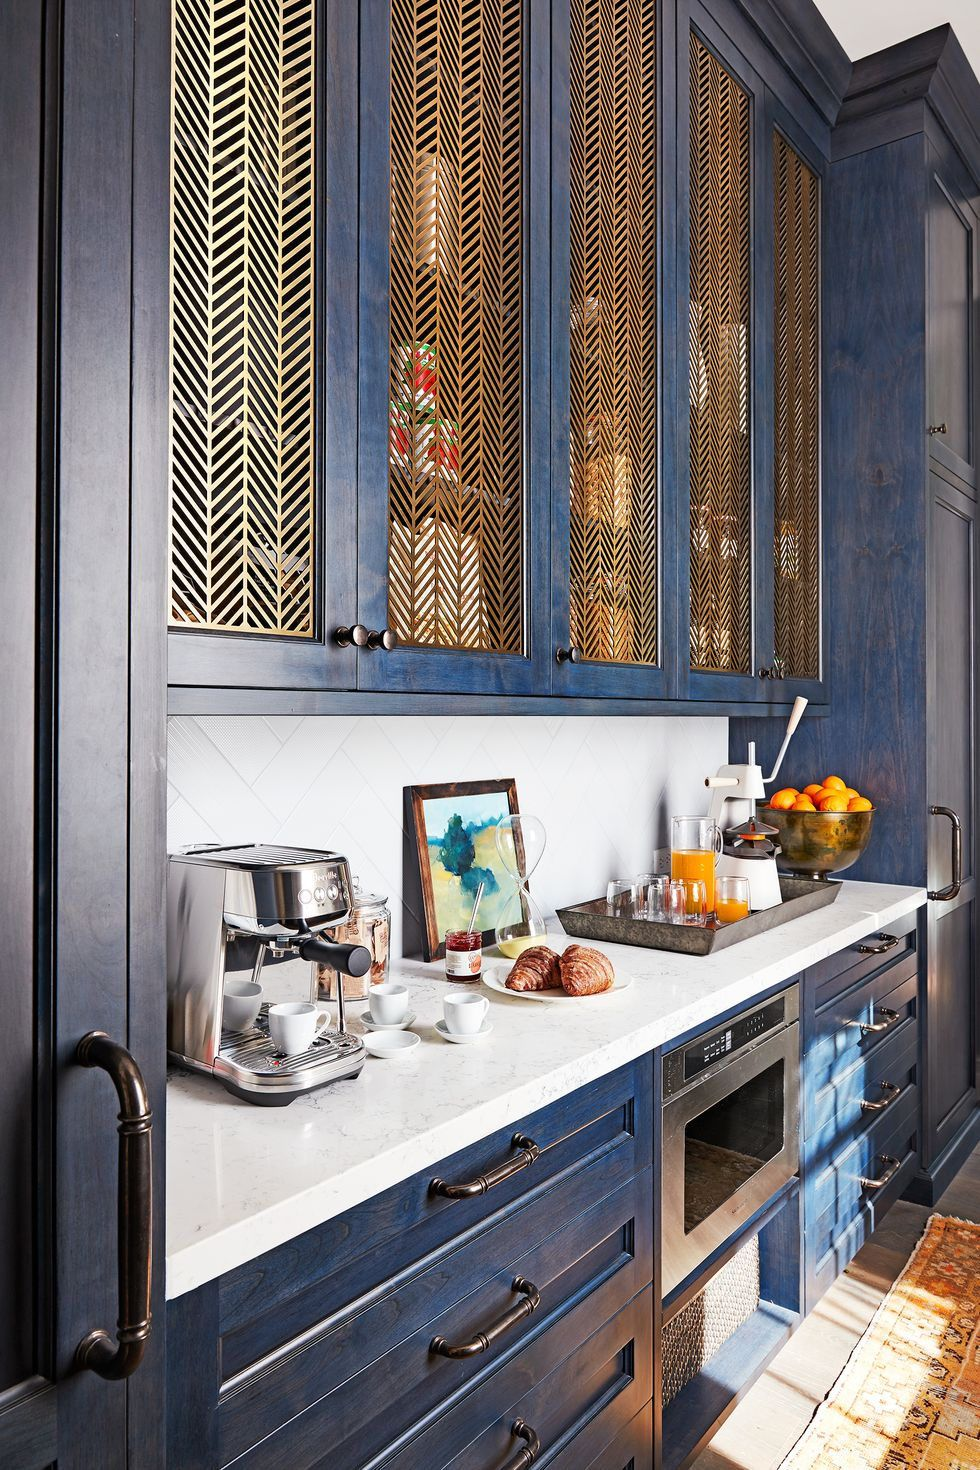 9 Creative Kitchen Cabinet Ideas We're Obsessed With   Kitchen ...